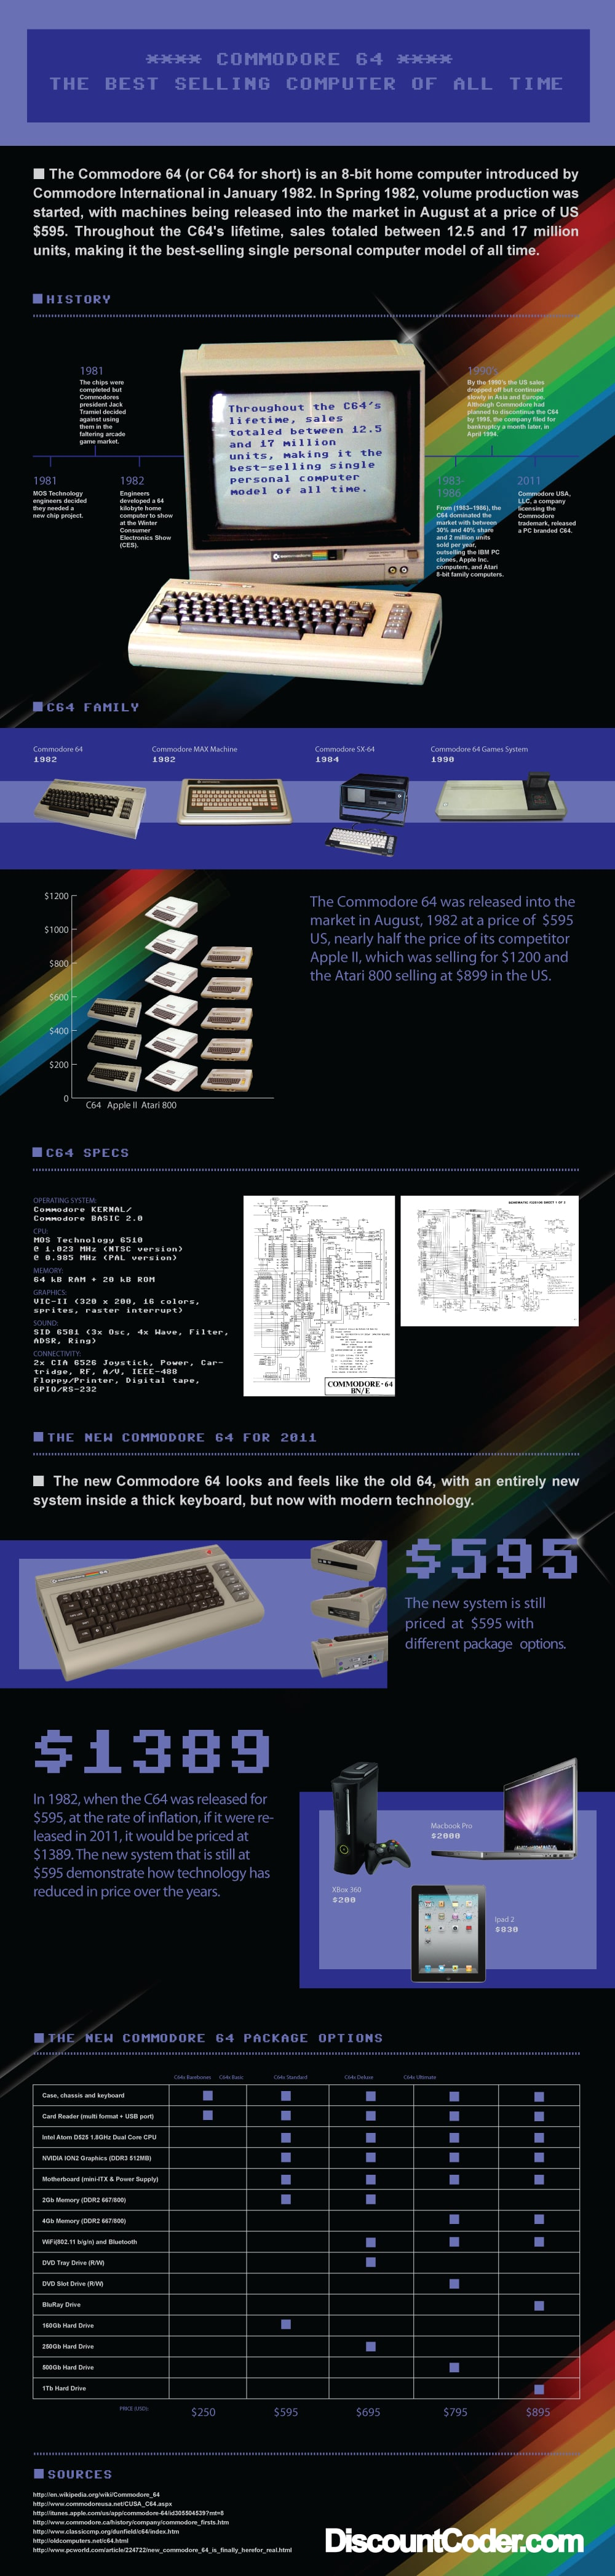 Commodore 64 History Timeline Infographic